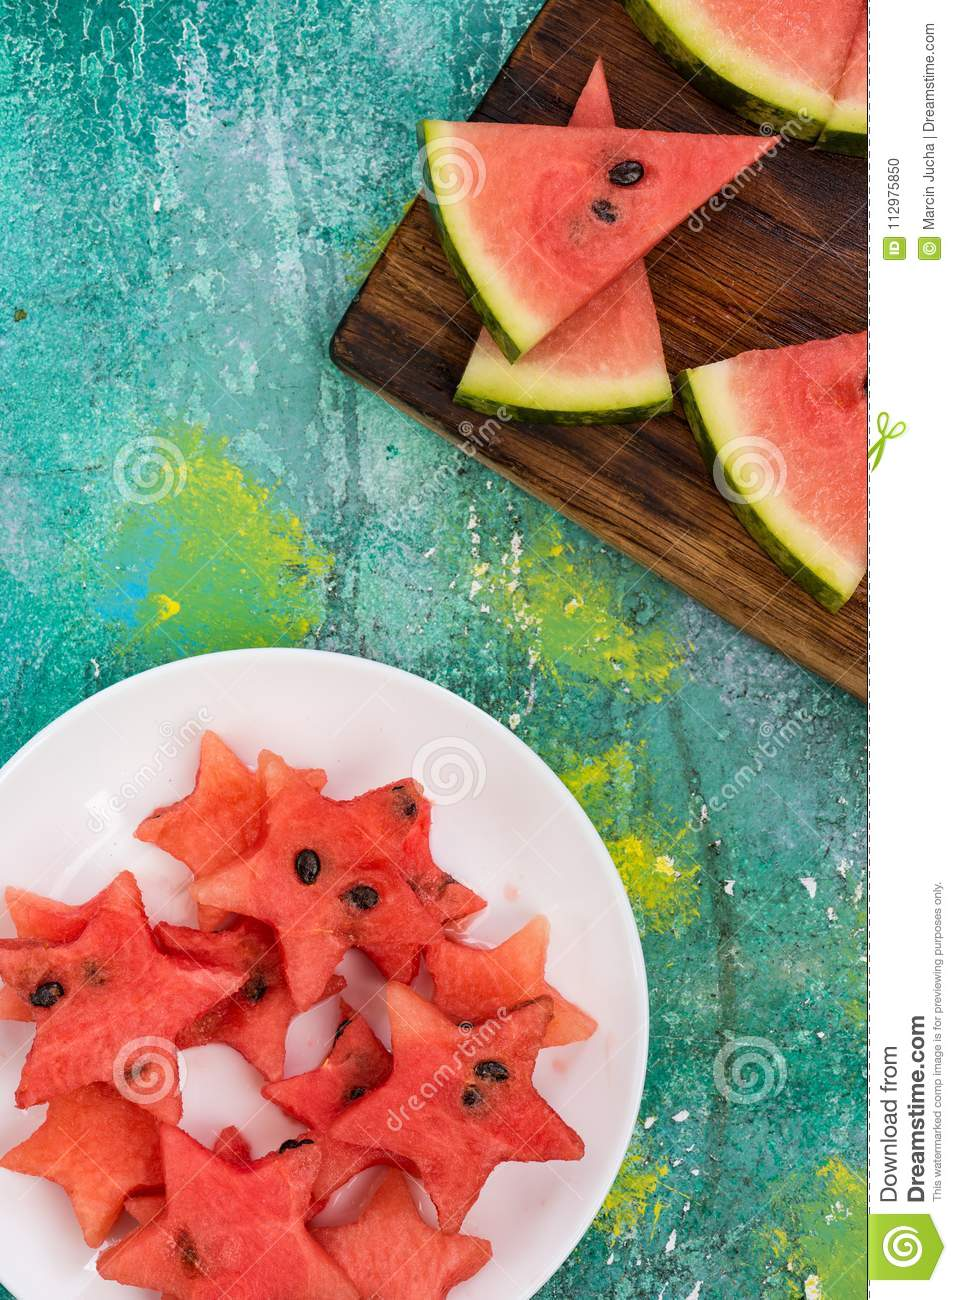 Healthy fruits food for kids garden party